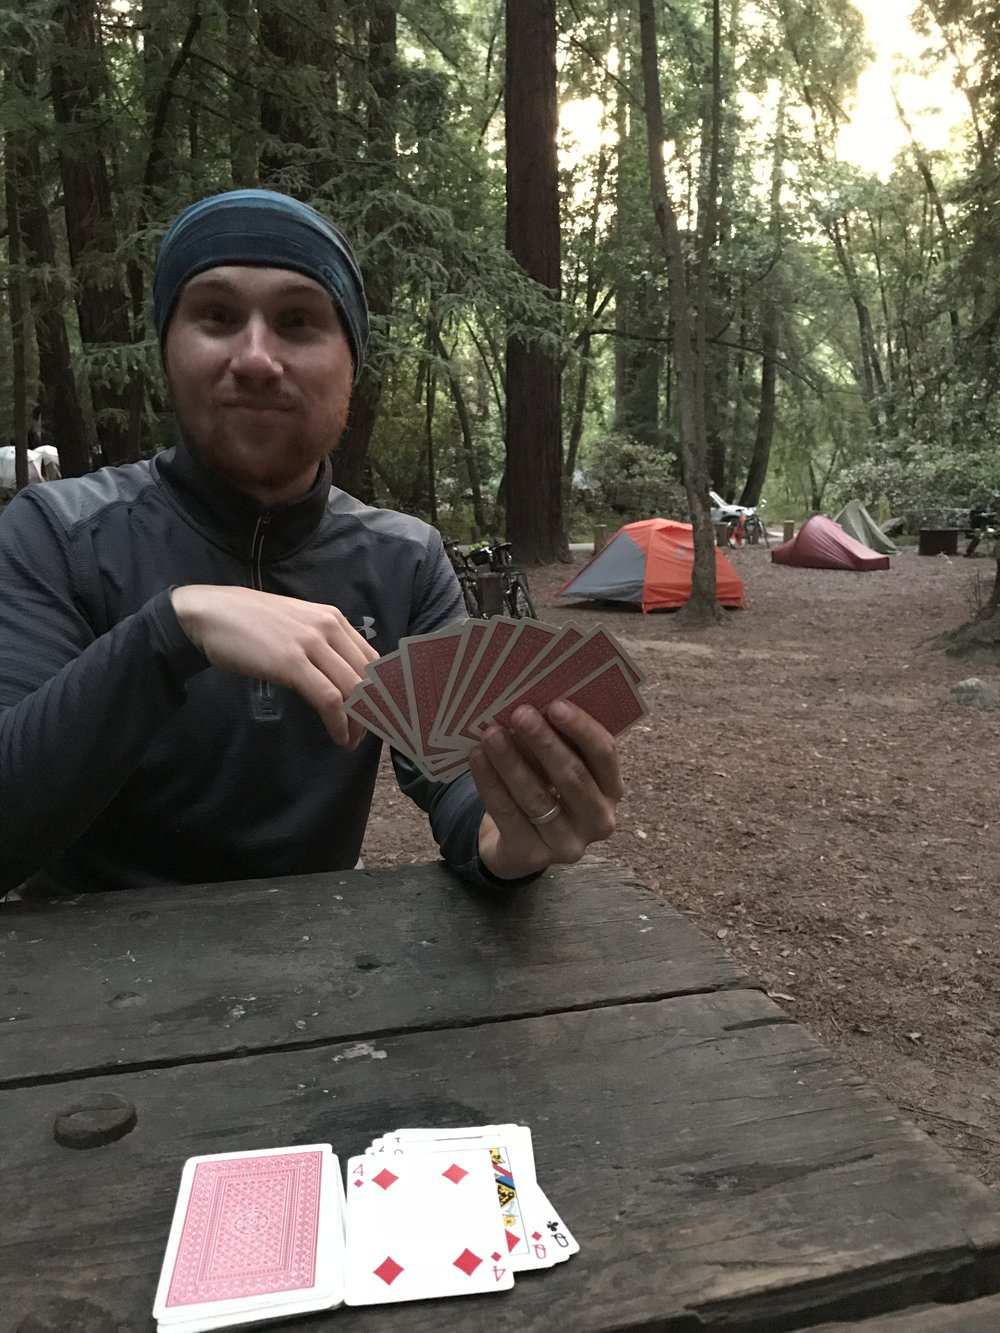 Getting ready for bed with some rounds of gin rummy. The hike/bike site at Big Sur State Park was beautiful - right inside a grove of redwoods.